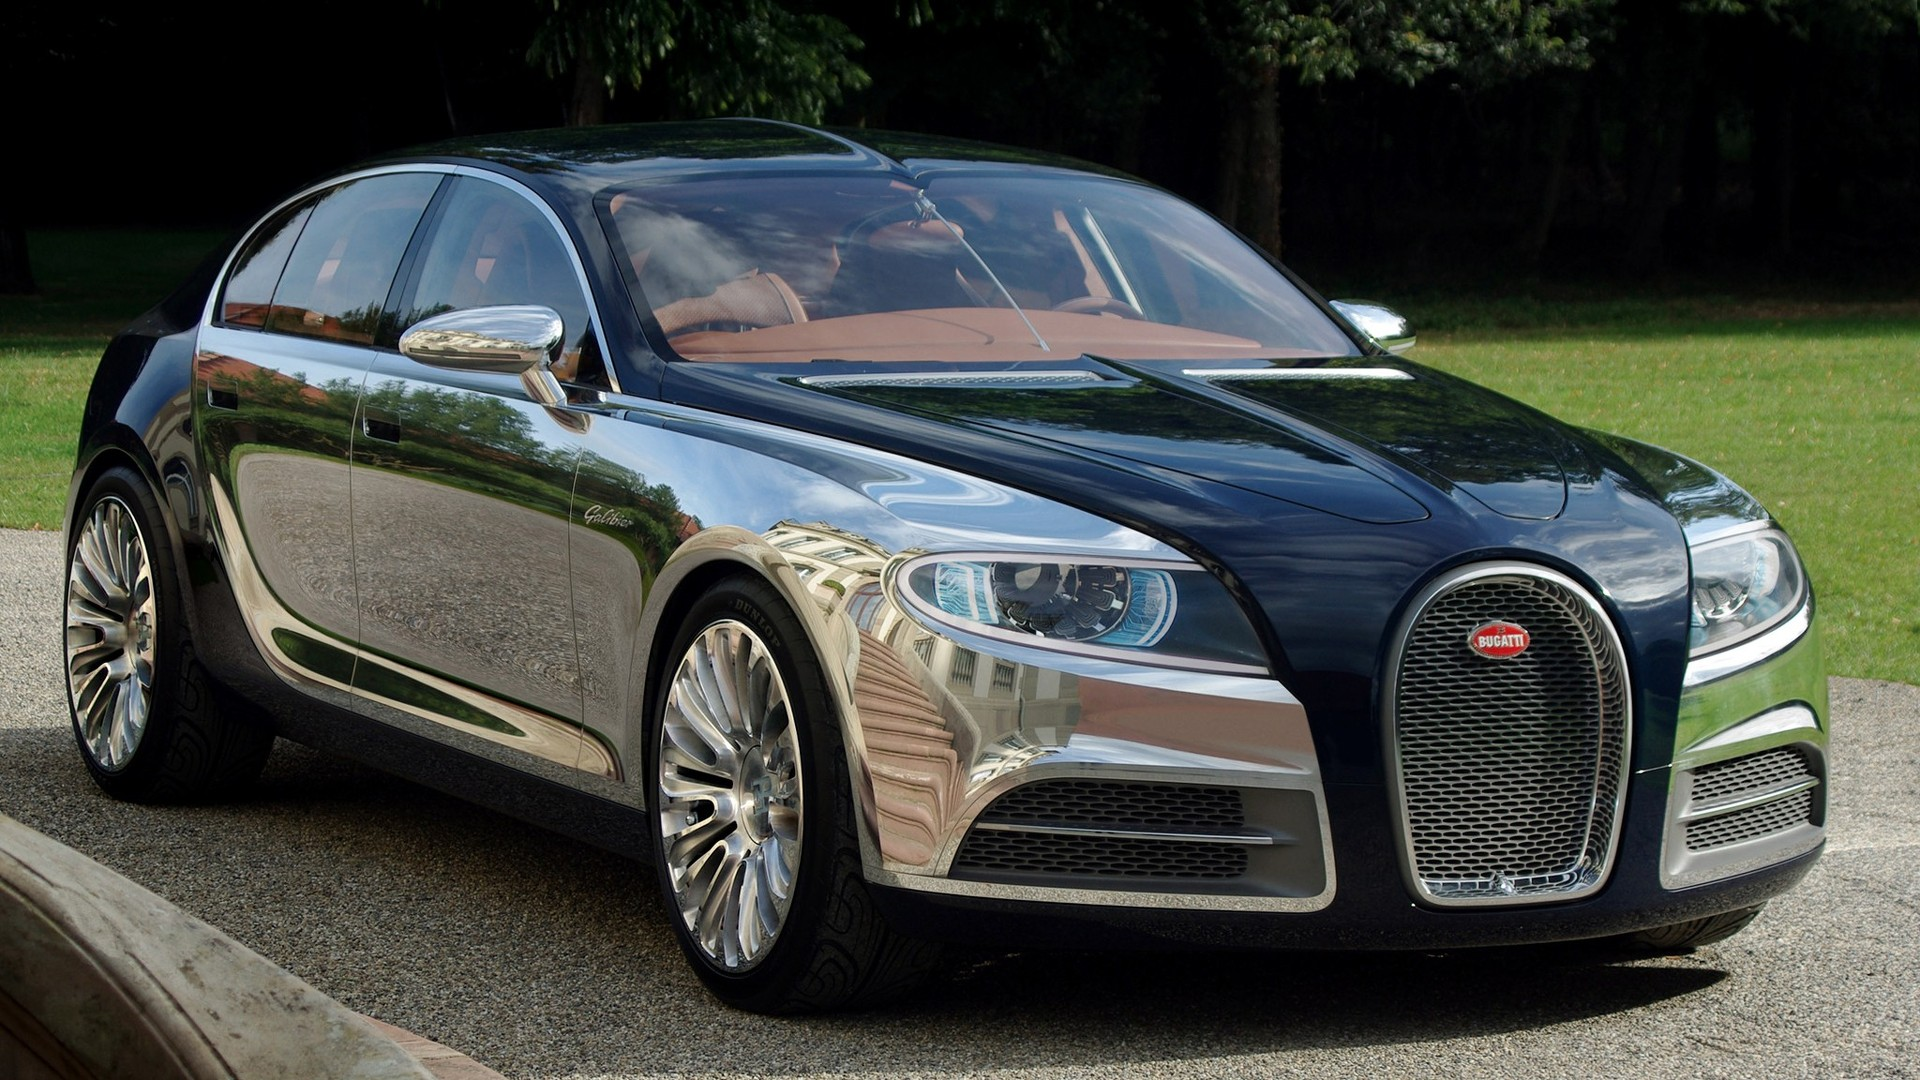 Bugatti Planning to Release a New Model - Newslibre